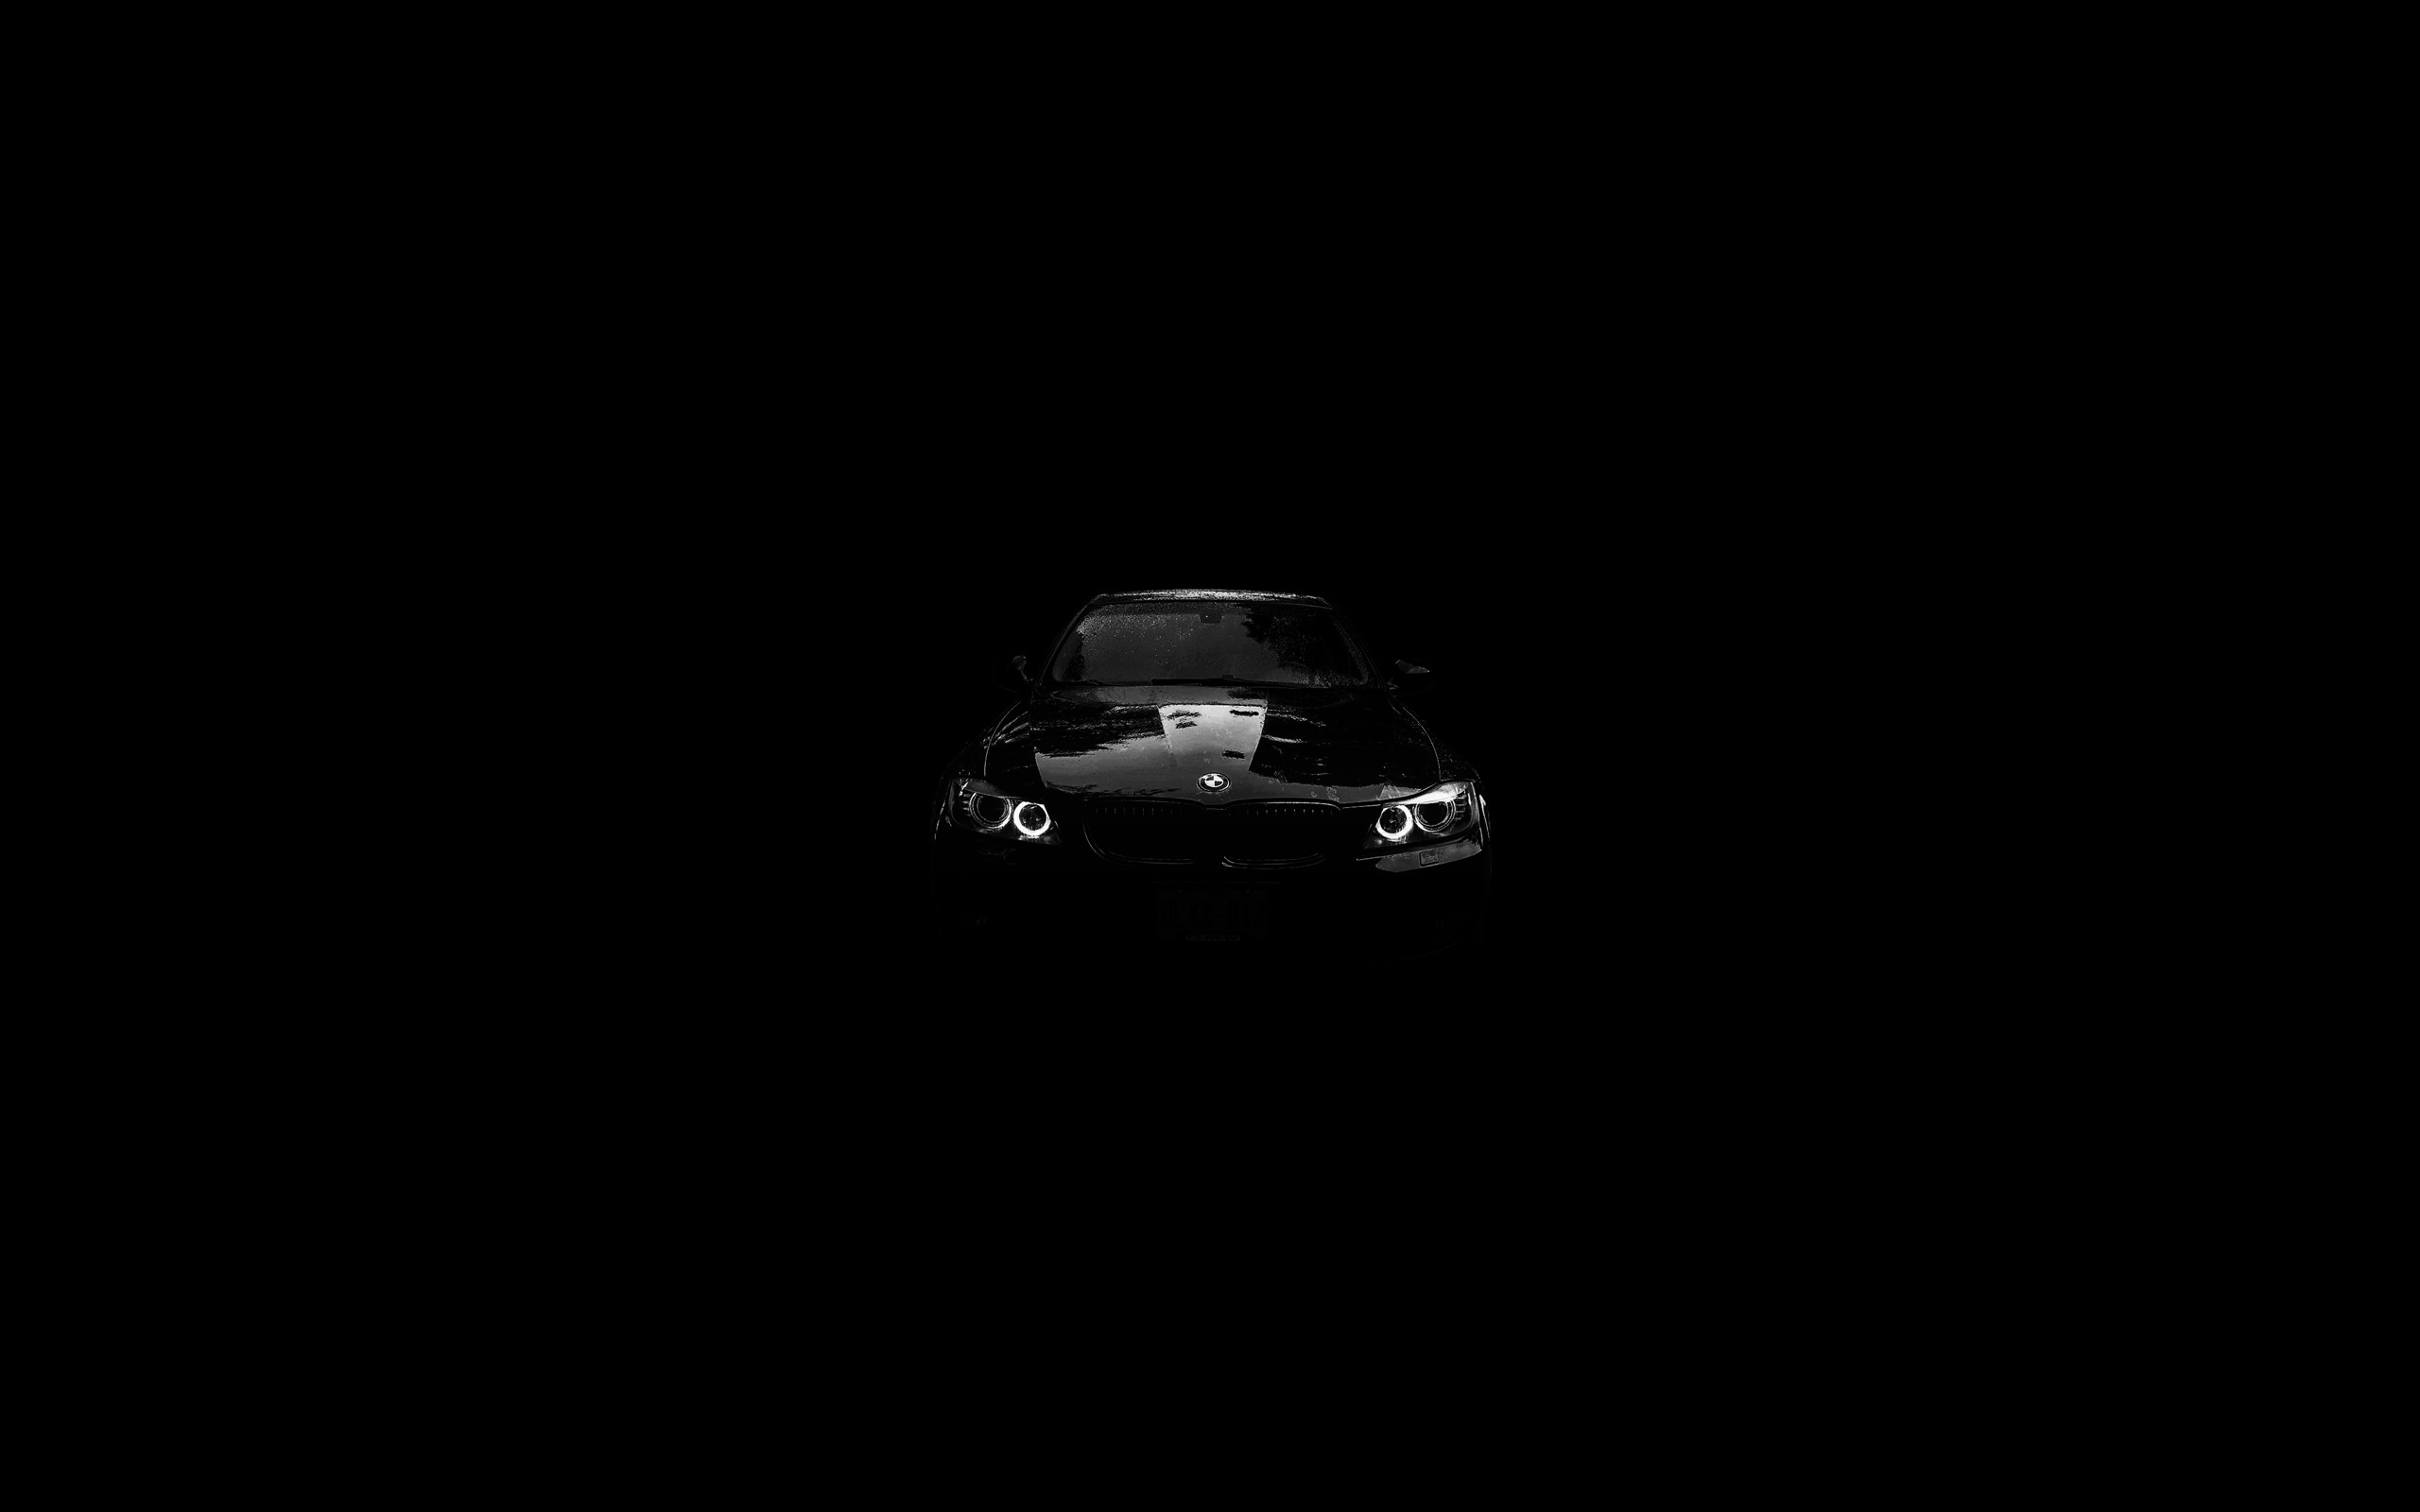 2560x1600 Bmw Black Background Is Cool Wallpapers